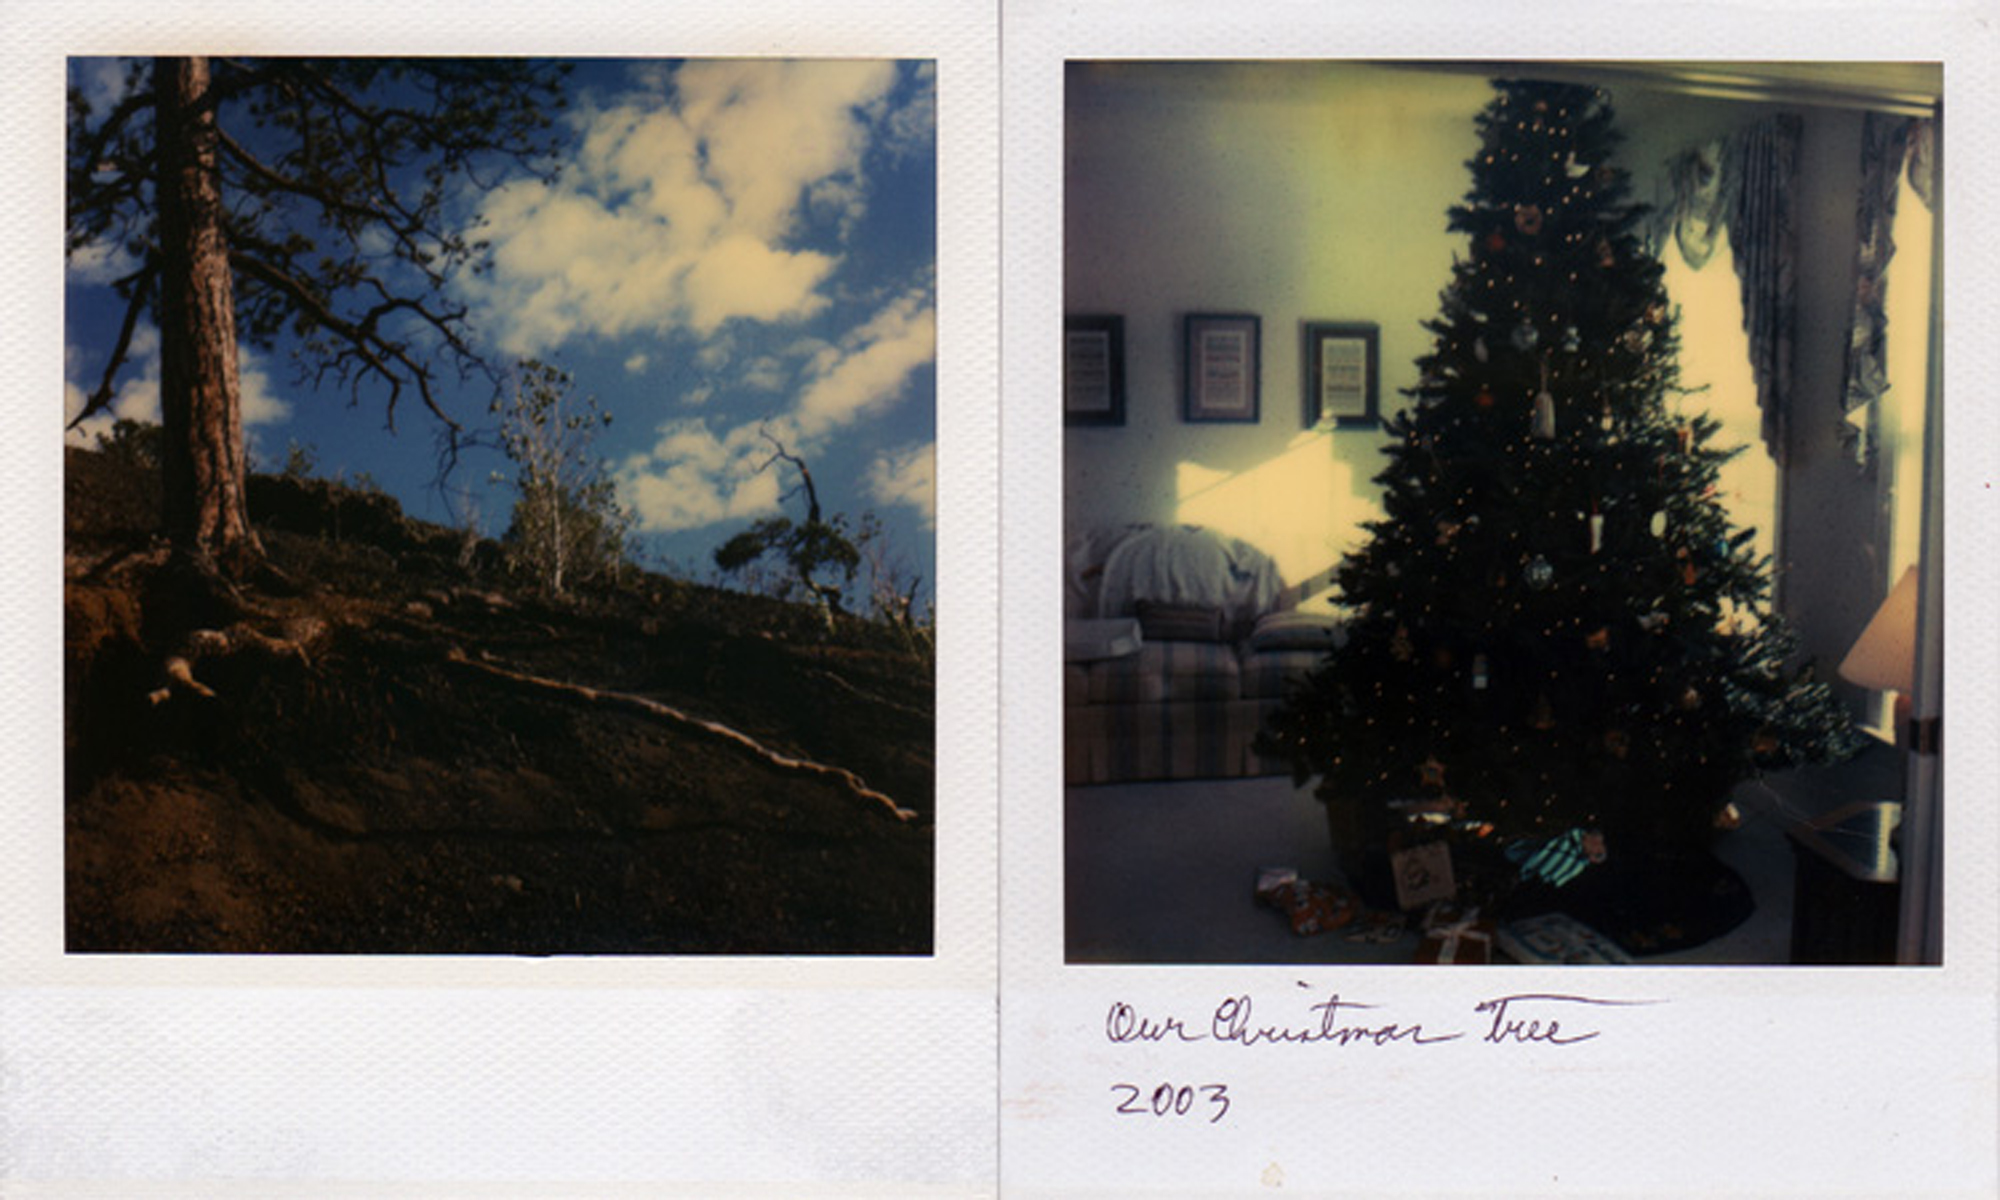 Tree (left); My father's Christmas tree, 2003 (right).